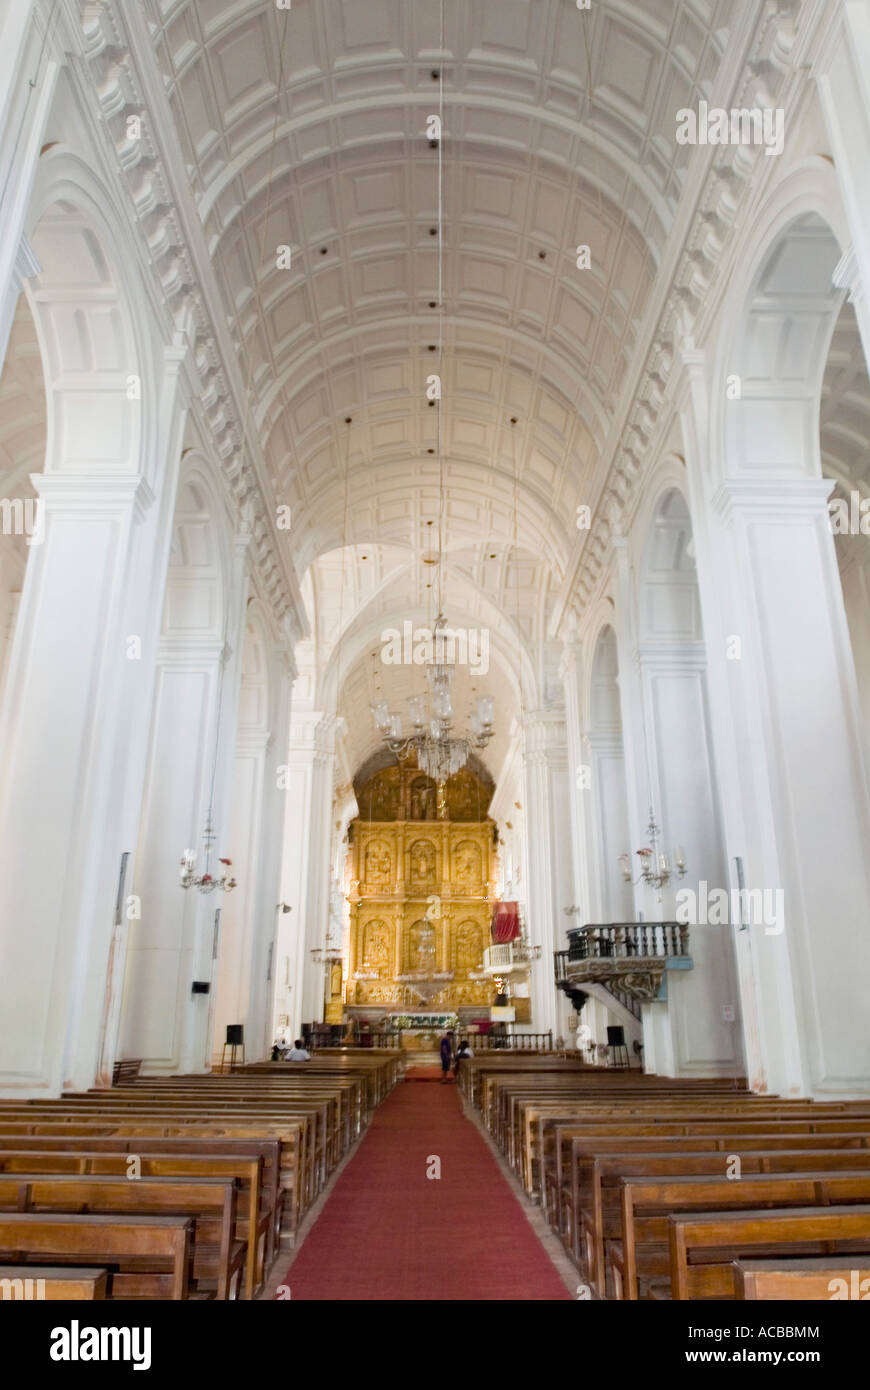 Interiors of a cathedral, Se Cathedral, Old Goa, Goa, India Stock Photo